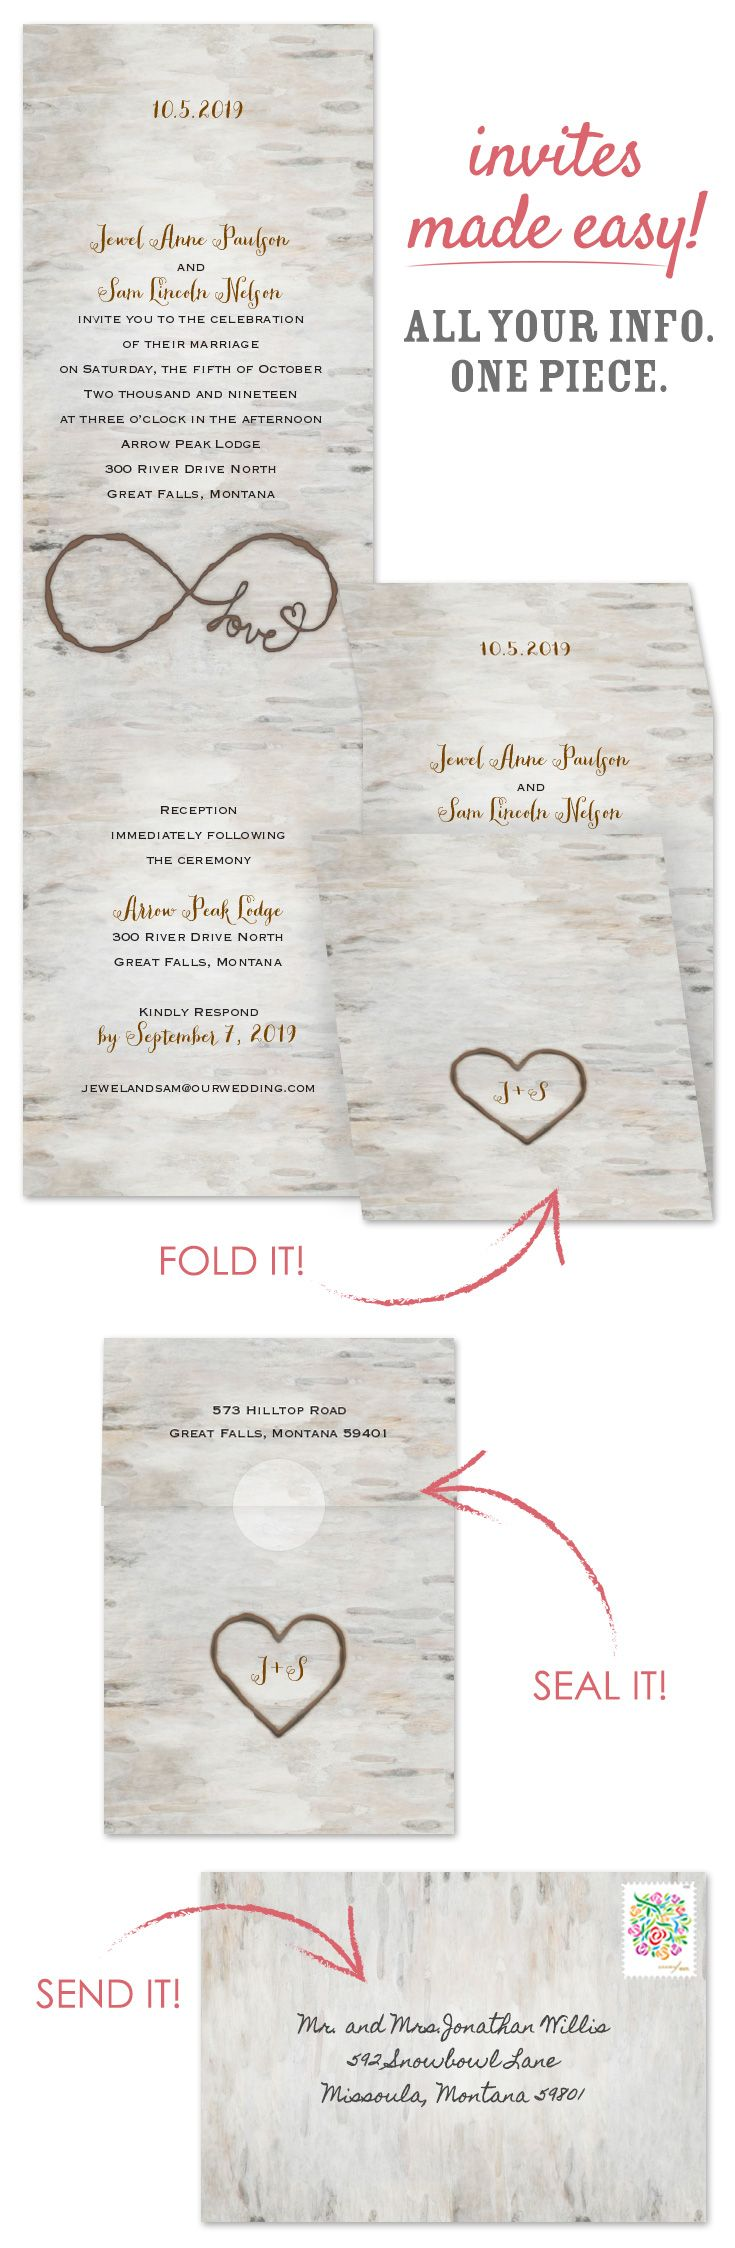 A birch background in charming watercolor creates these rustic woodland wedding invitations perfect for your nature-inspired wedding. The monogram heart on the outside front of these folding invitations and the infinity symbol inside appears as if burned into the birch background @annsbargains